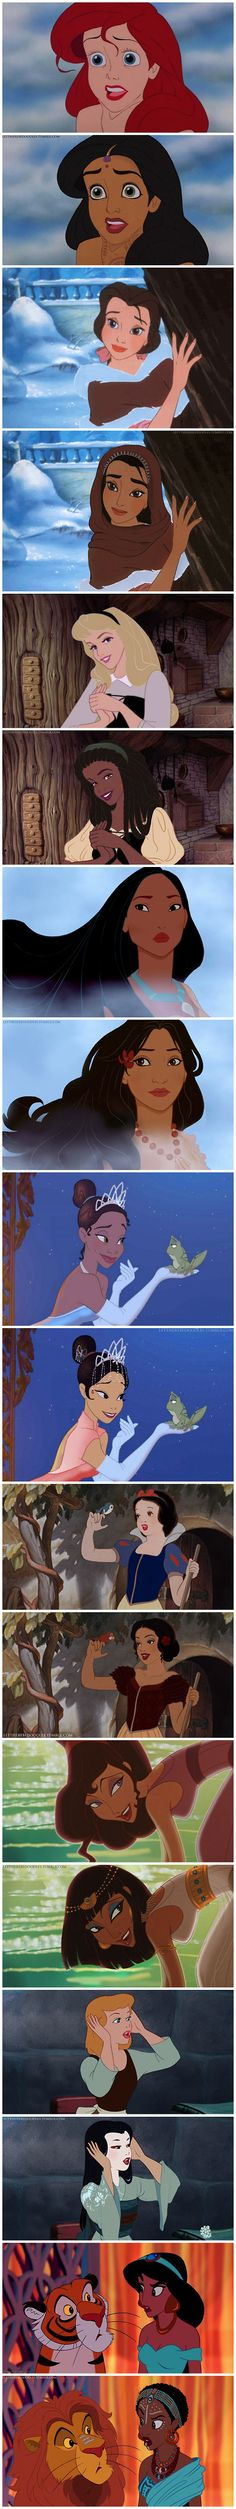 Love these Disney princesses with different races!